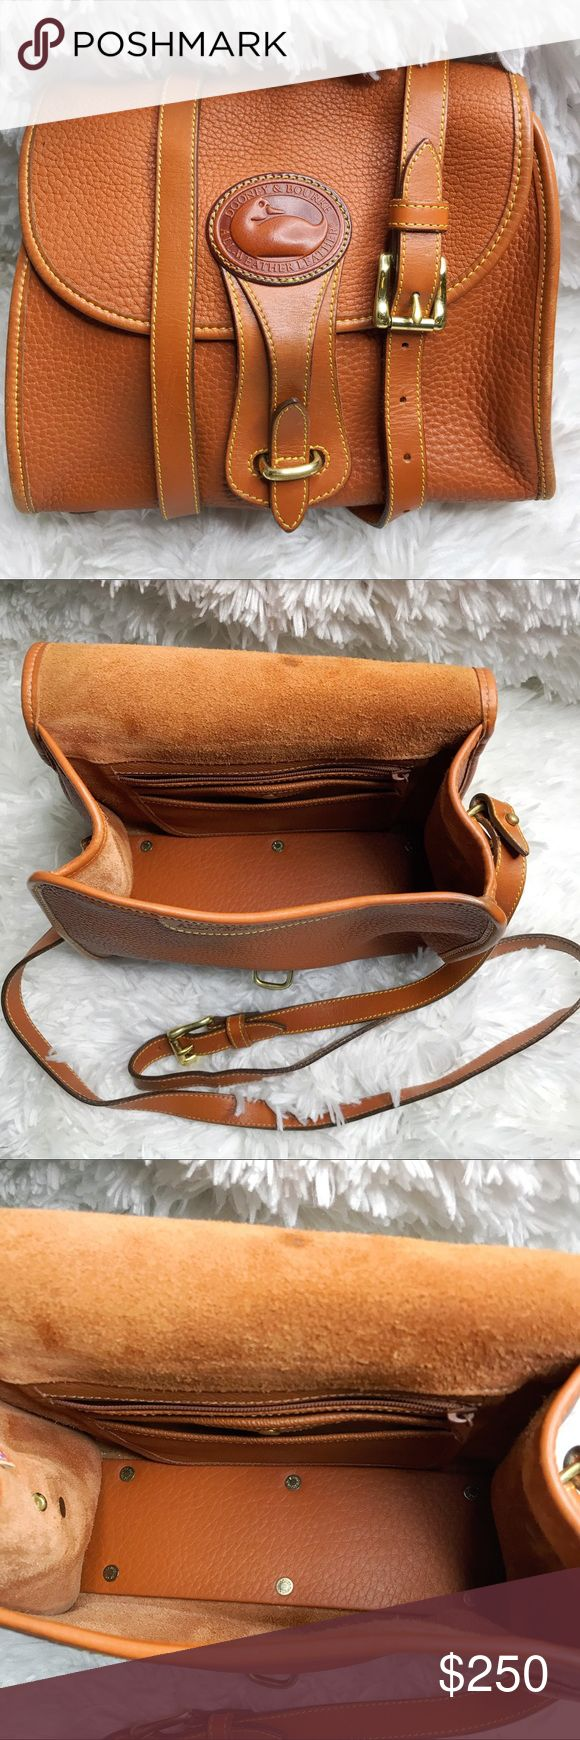 Dooney & Burke Vintage Medium Essex Crossbody Bag Bag is authentic.   Color: English Tan Measurements: 10 x 8 x 3.5 inches Vintage bag has 6 brass bag protectors on the bottom.  Bag is in excellent vintage condition.  Some wear on corners as would be a expected.  It does have a few marks which are not that easy to spot see pictures. Dooney & Bourke Bags Crossbody Bags